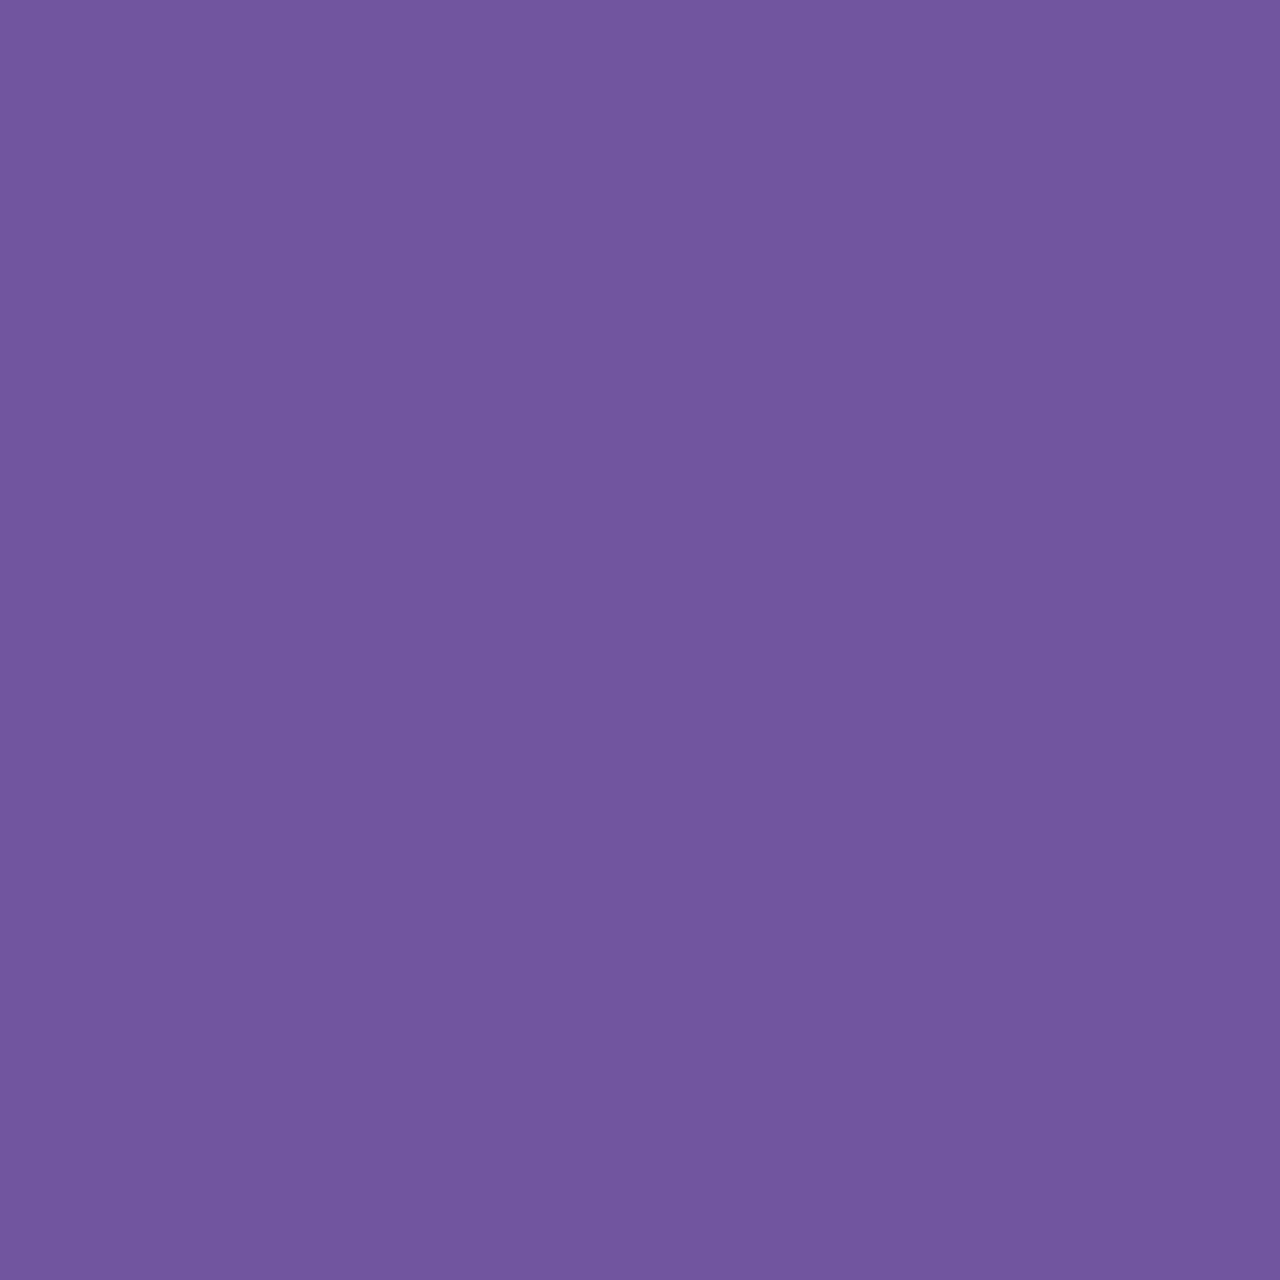 #4960 Rosco Gels Roscolux CalColor 60 Lavender, 20x24""